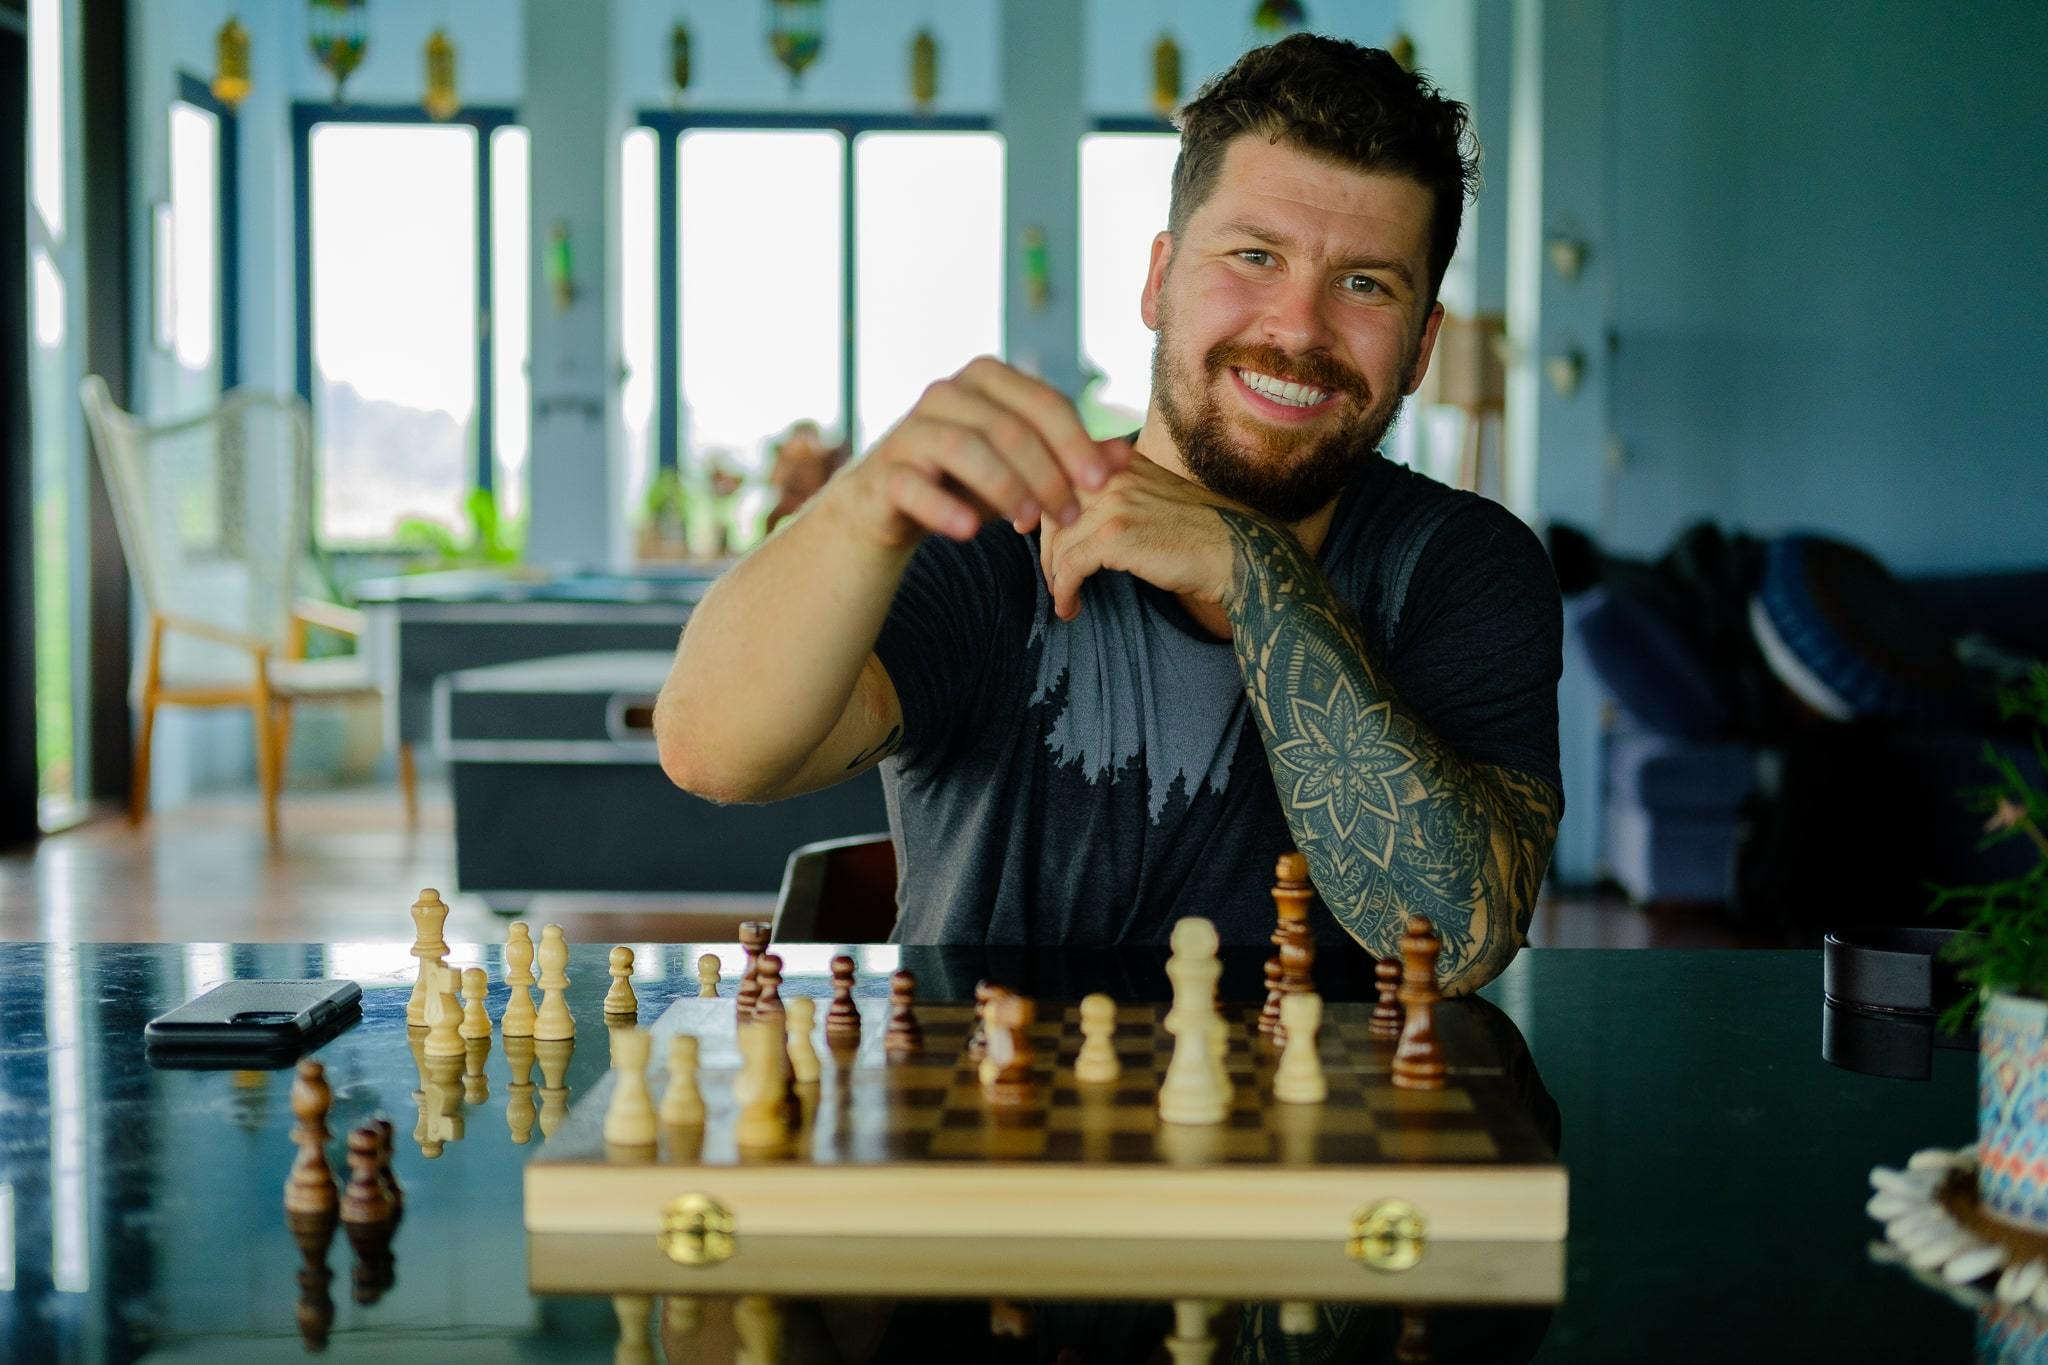 Will Hatton - backpacker magician - in Bali where he's building his own hostel to live in